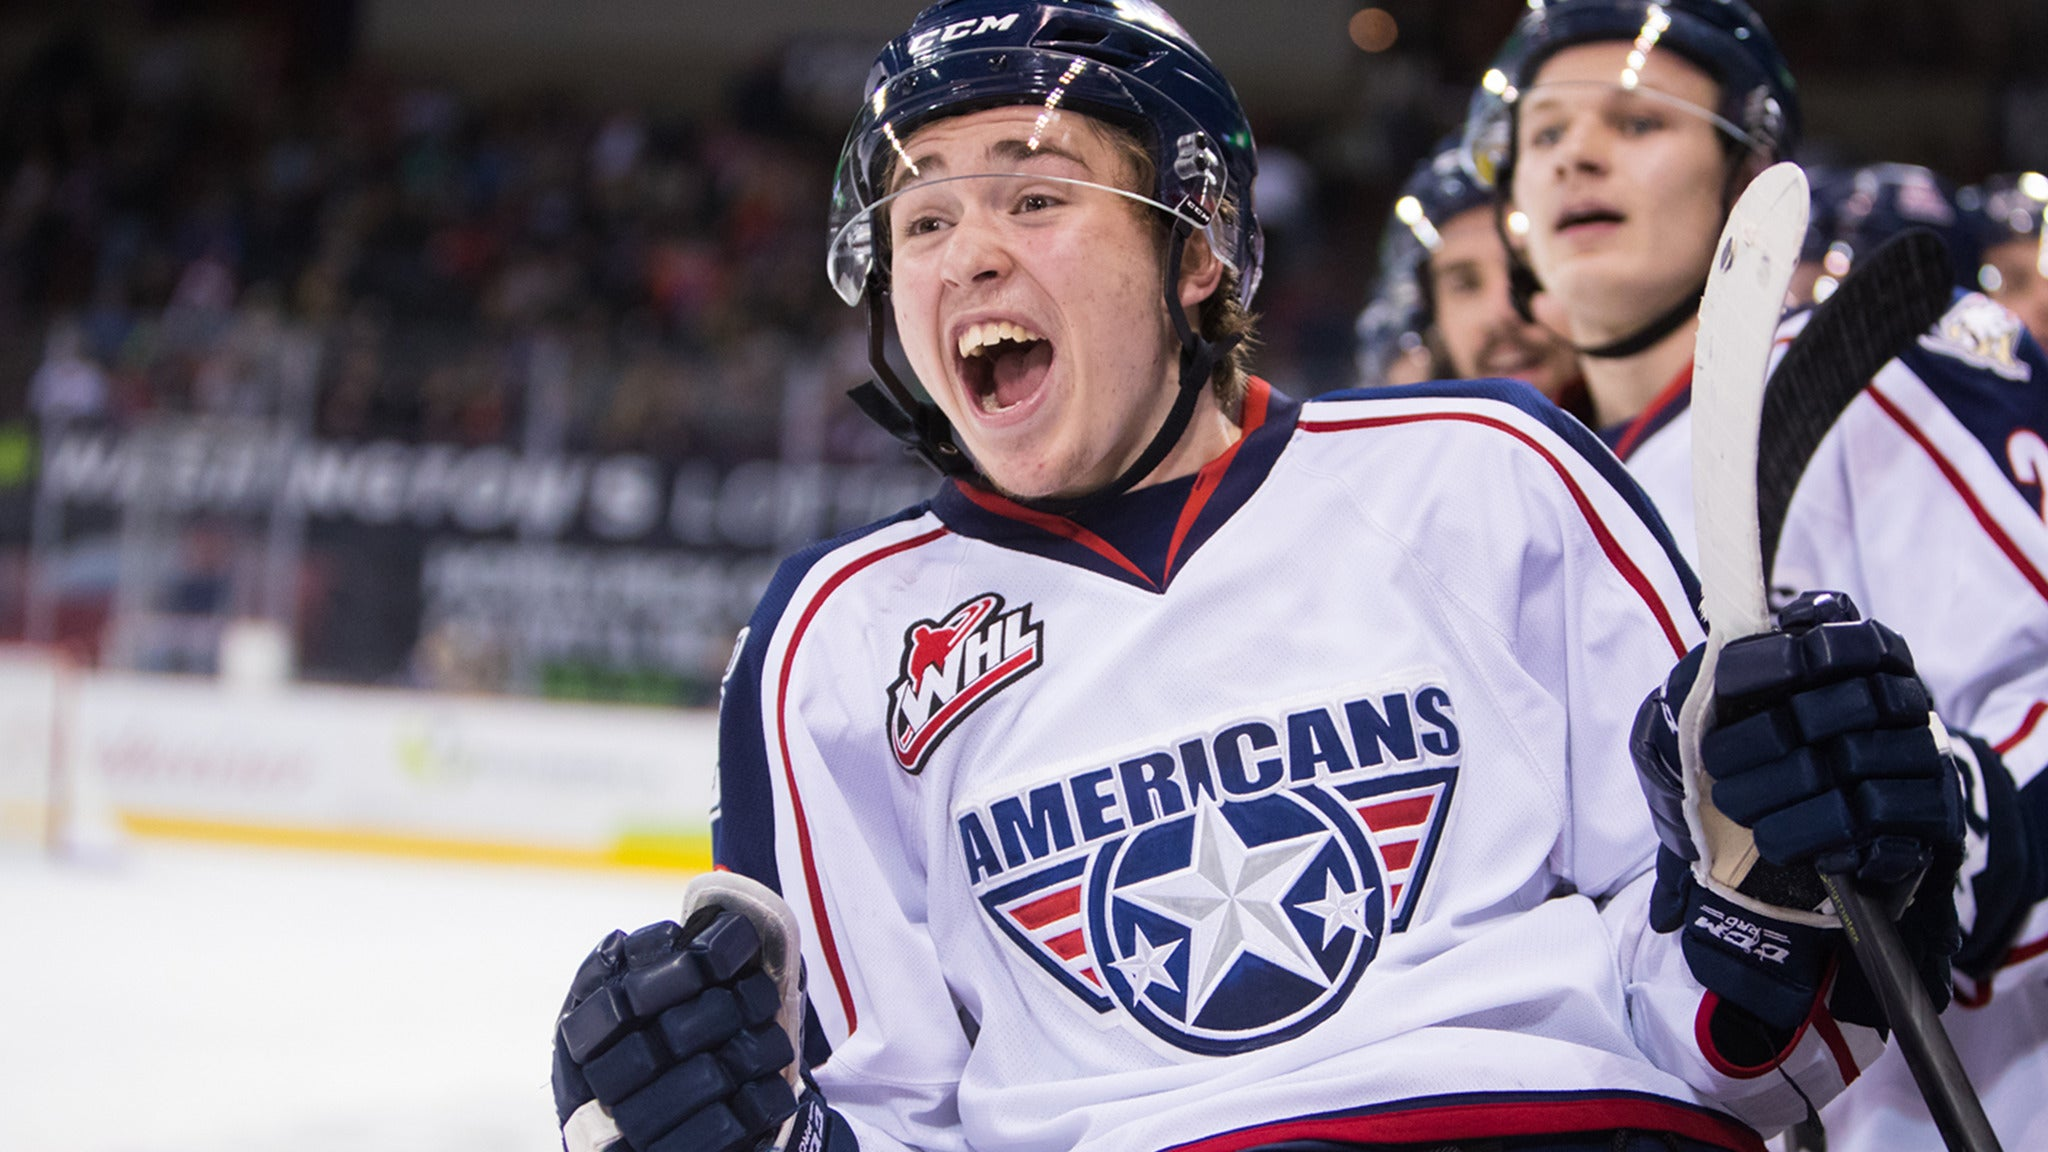 Tri-City Americans vs. Kamloops Blazers